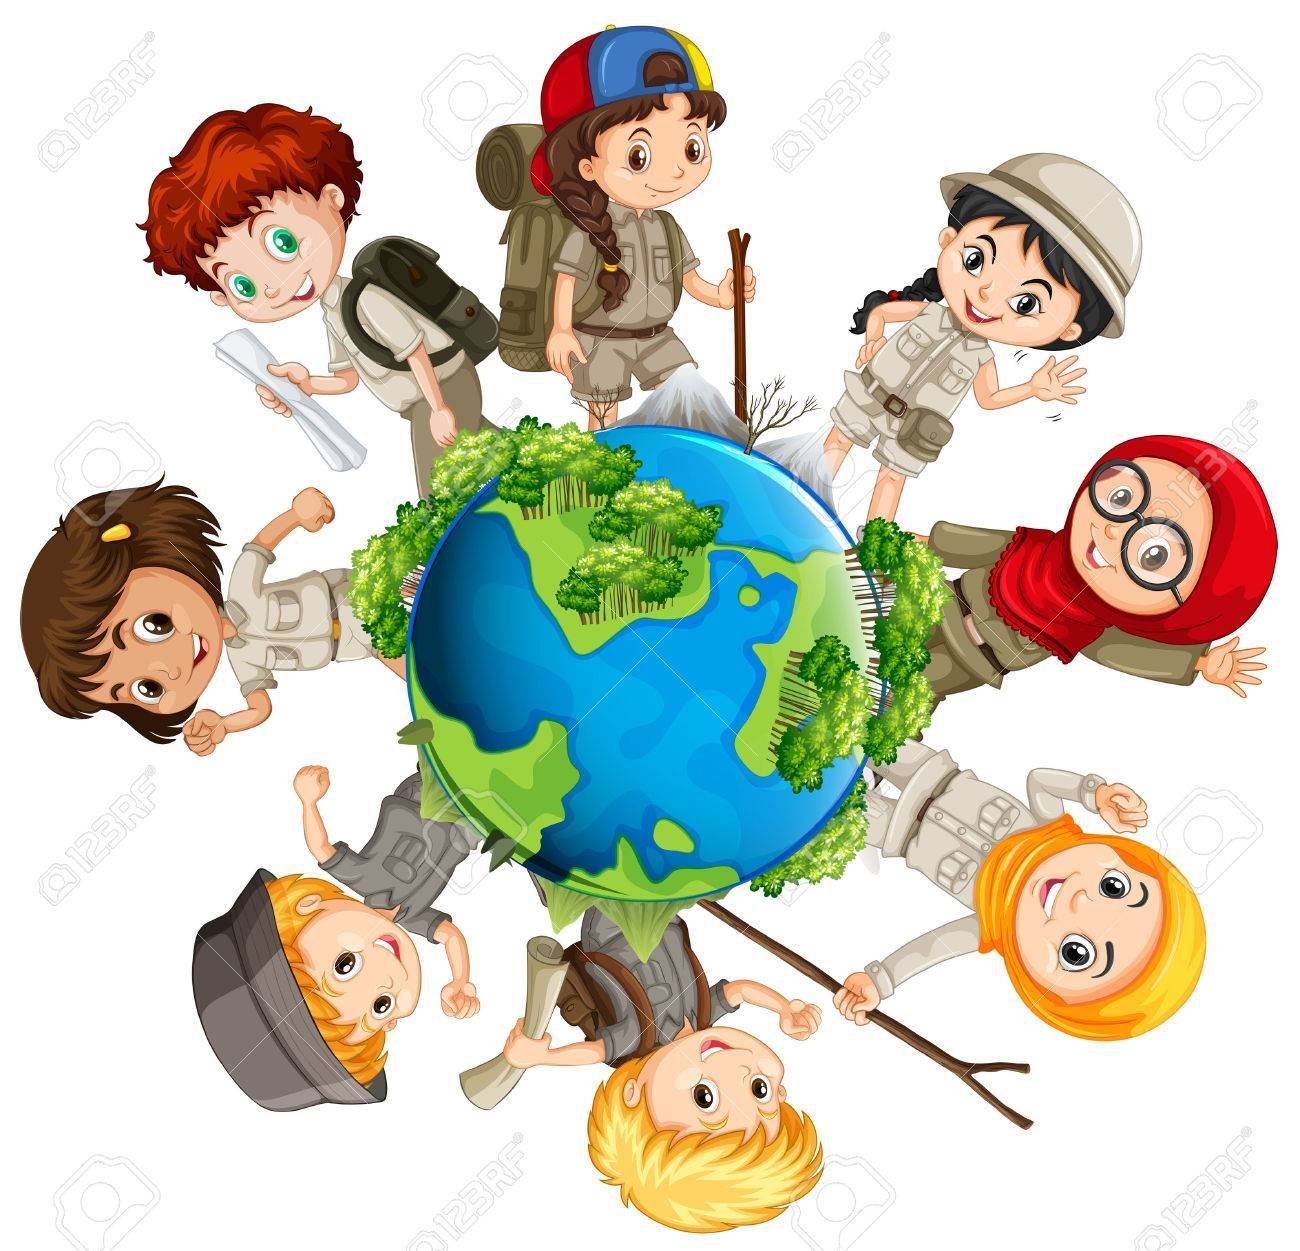 Environment clipart care. Caring for portal